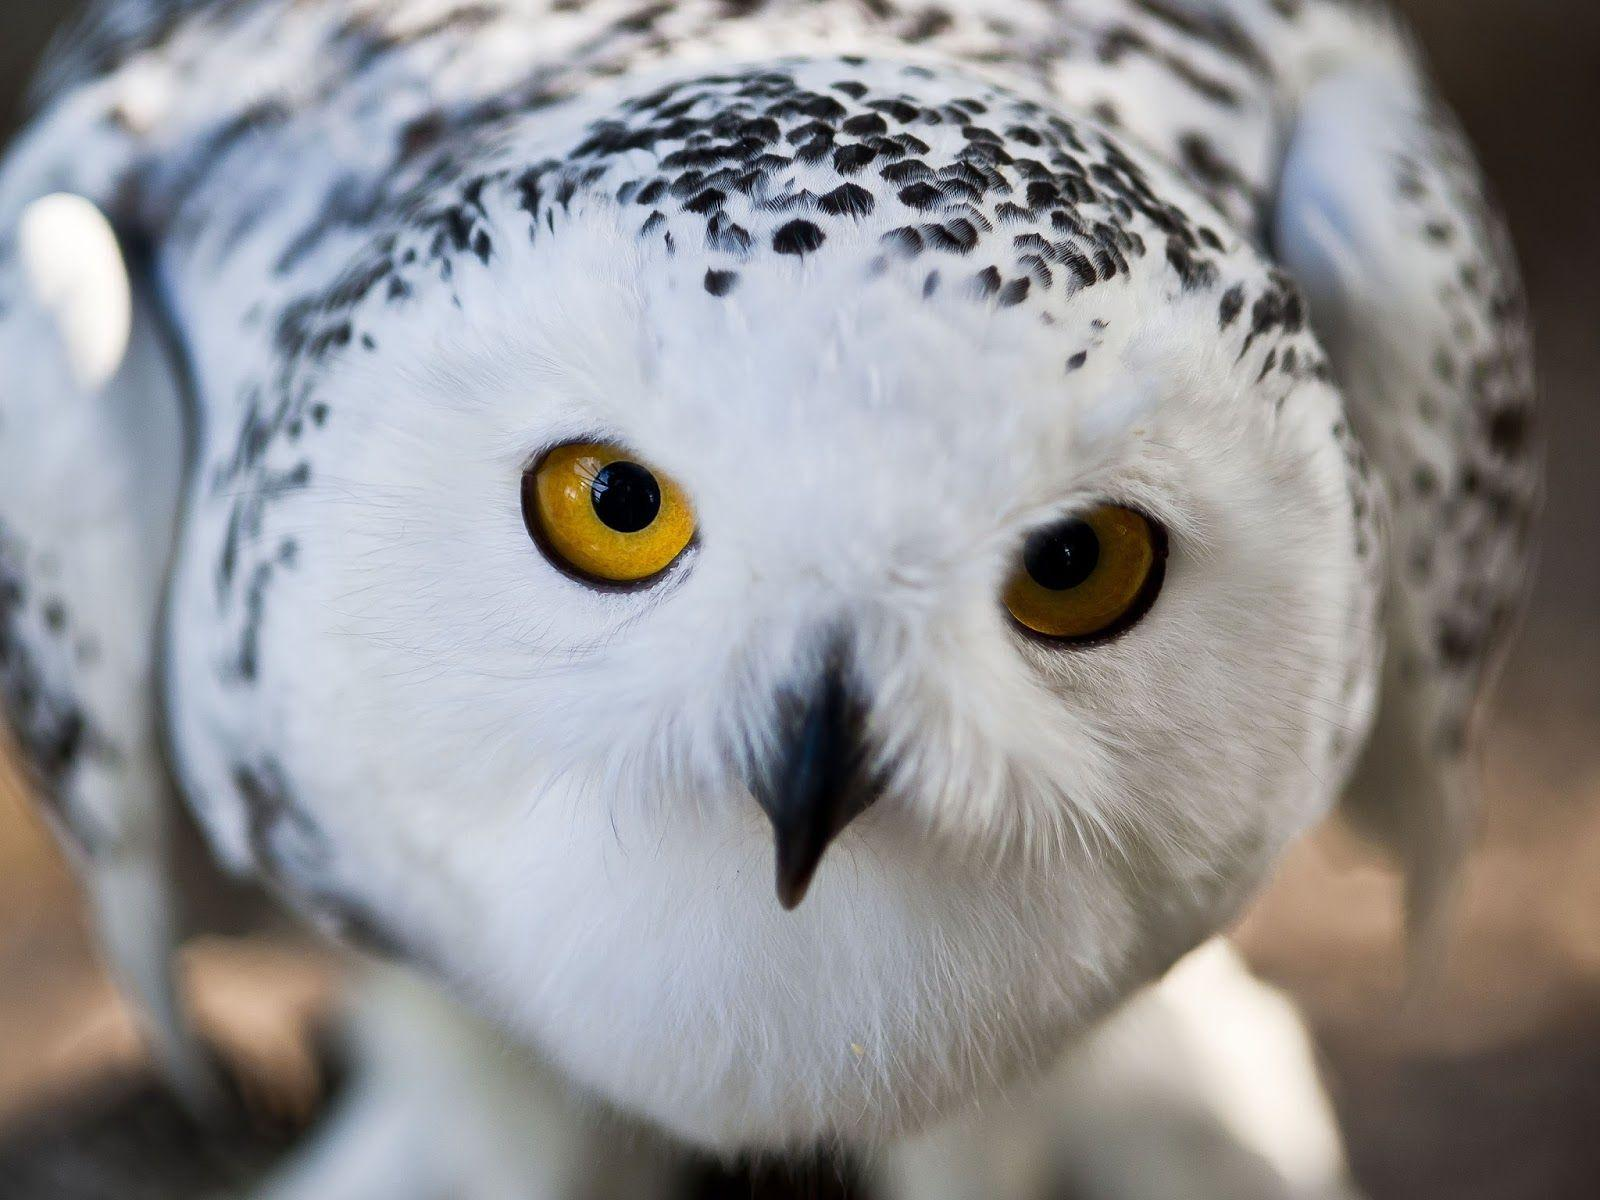 Snowy Owl HQ Background Wallpaper 20434 - Baltana